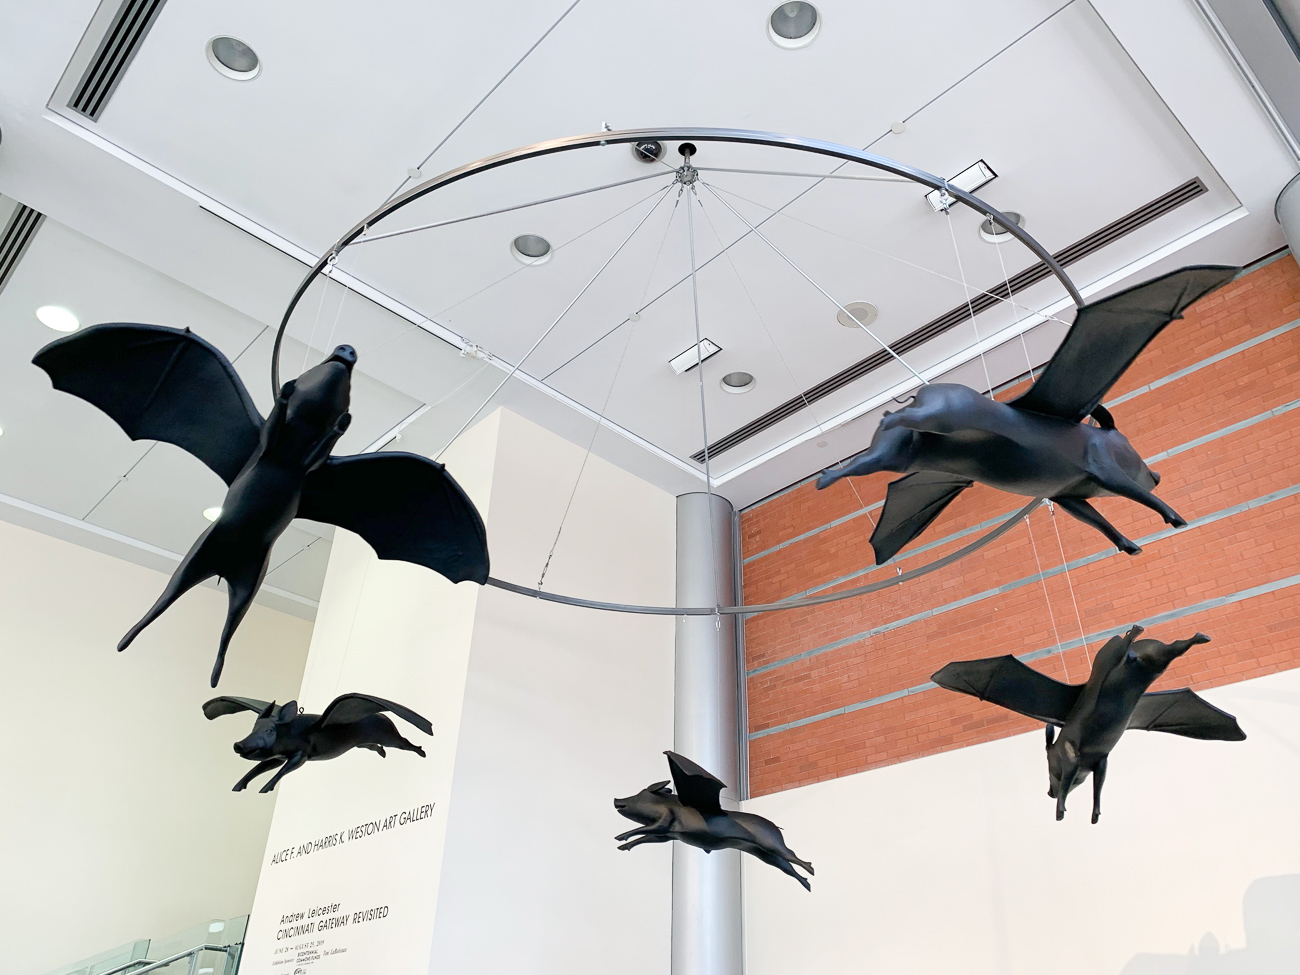 A sculpture on the street level gallery features twirling flying pigs with bat wings. Designed by Andrew Leicester years later, the piece represents an incapacitated political machine that's unable to progress, circling back on itself over and over again. It's a response to the short-lived controversy that circled the flying pig back in the late 80s. / Image: Phil Armstrong // Published: 8.13.19